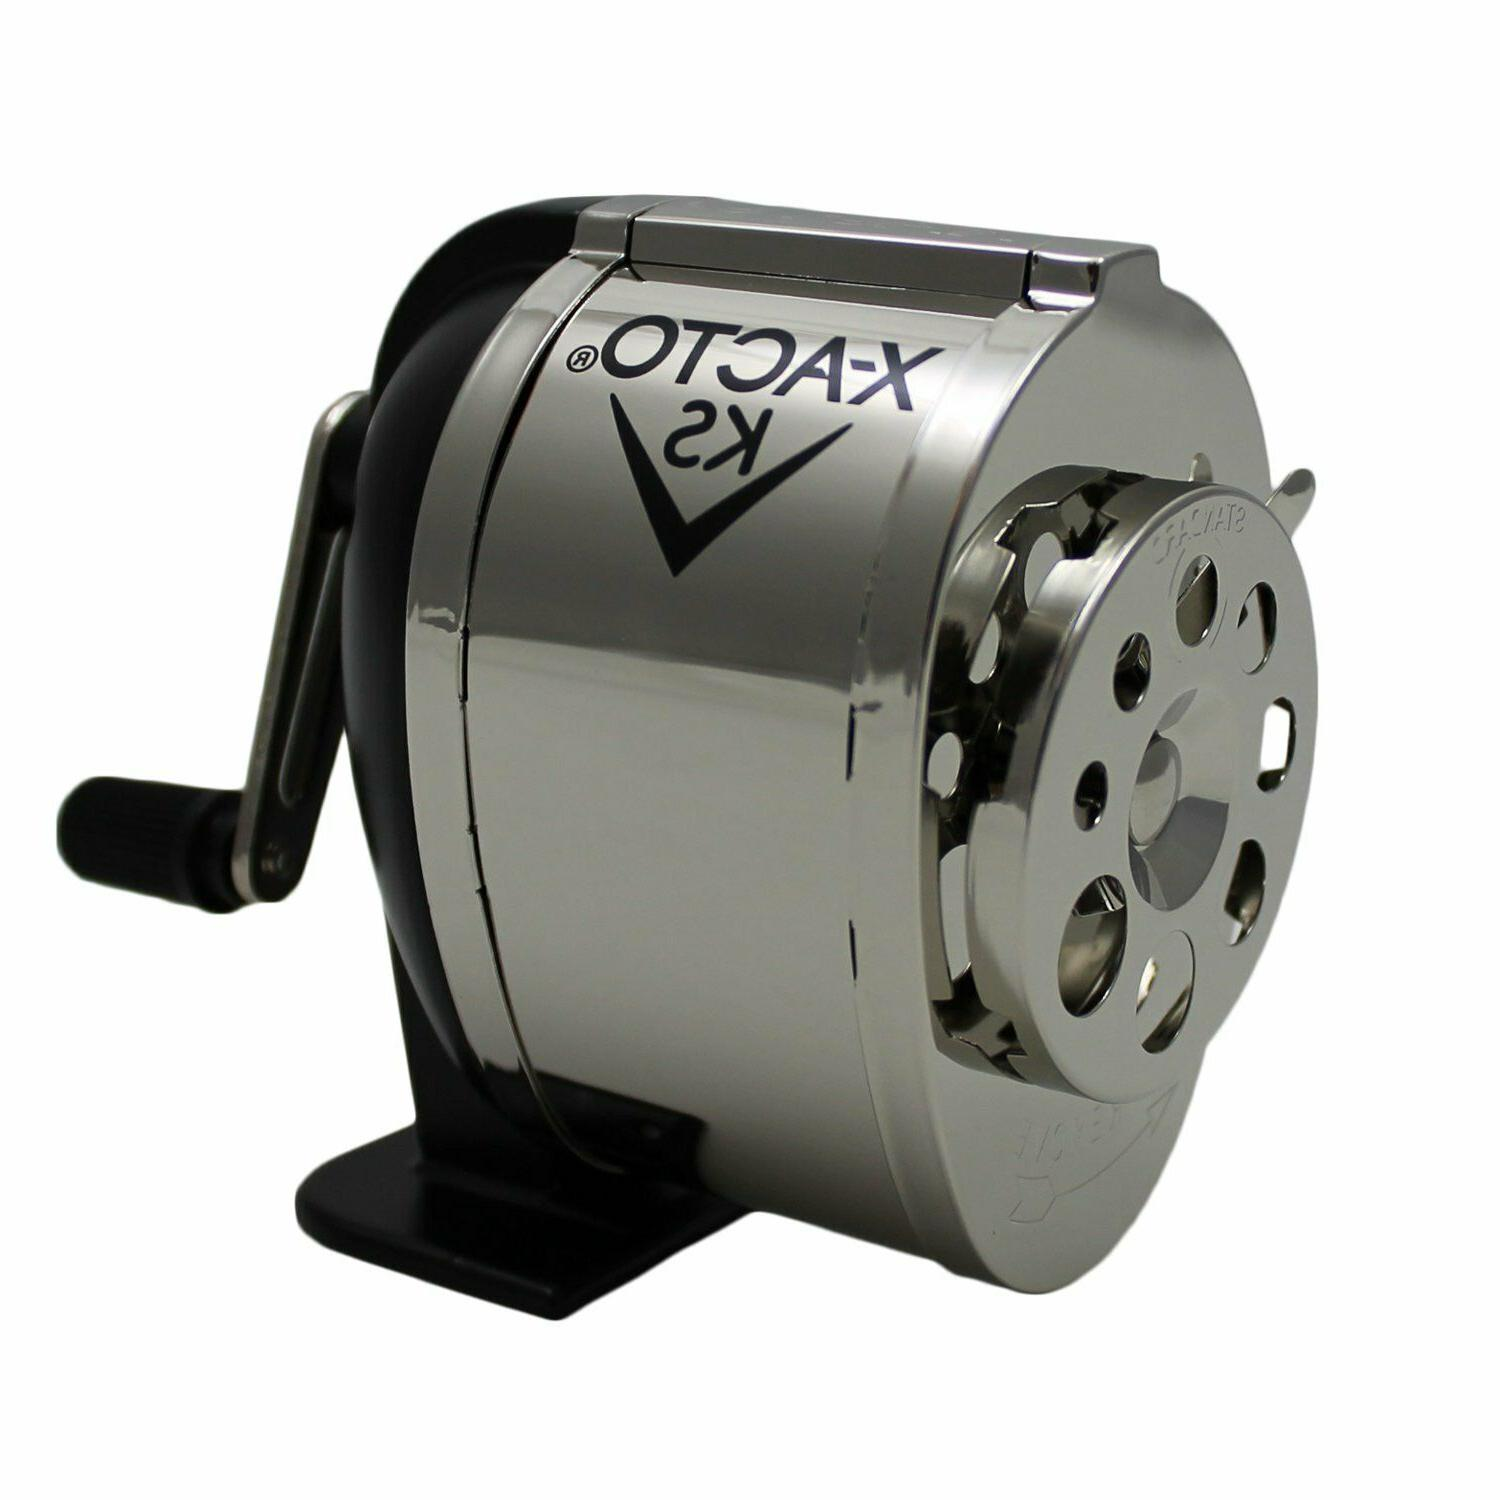 Pencil Sharpener Mountable on